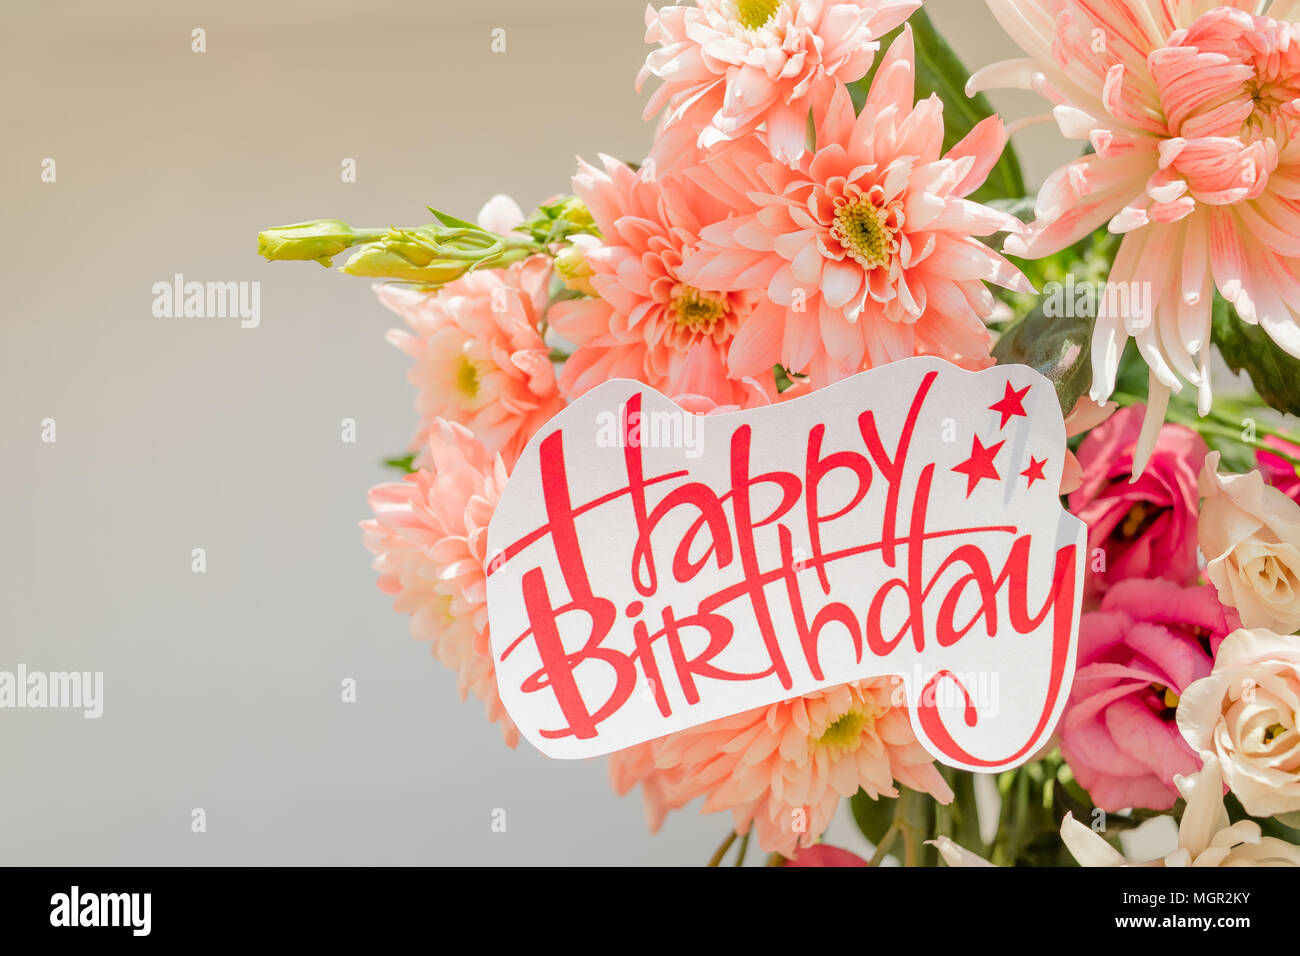 Soft Pink Chrysanthemums And Happy Birthday Posterautiful Flowers